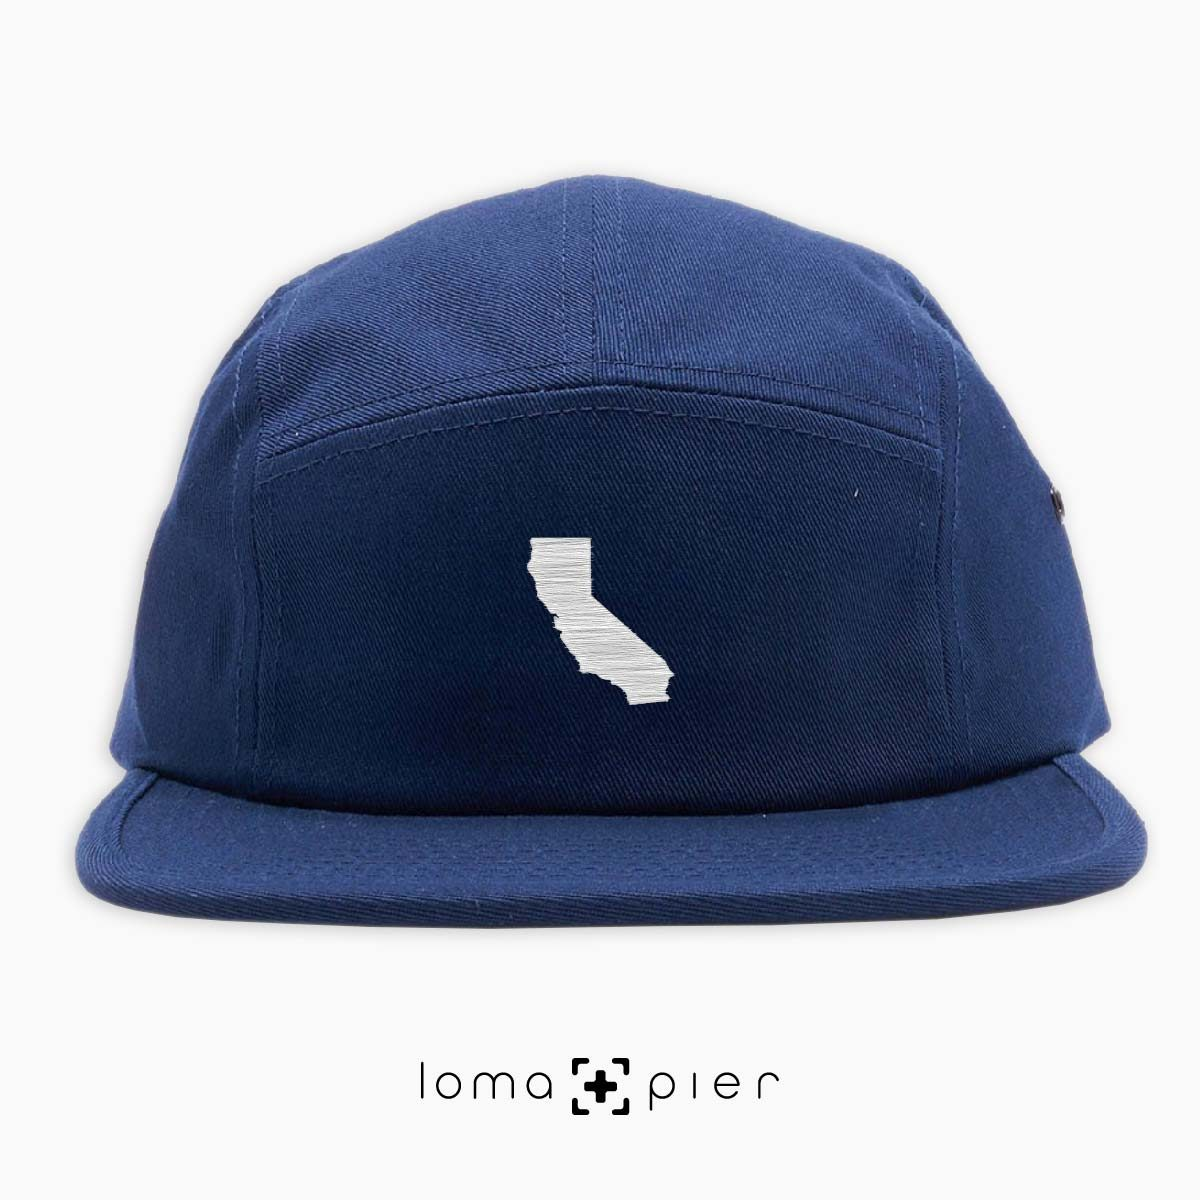 CALIFORNIA silhouette icon embroidered on a navy blue cotton 5-panel hat by loma+pier hat store